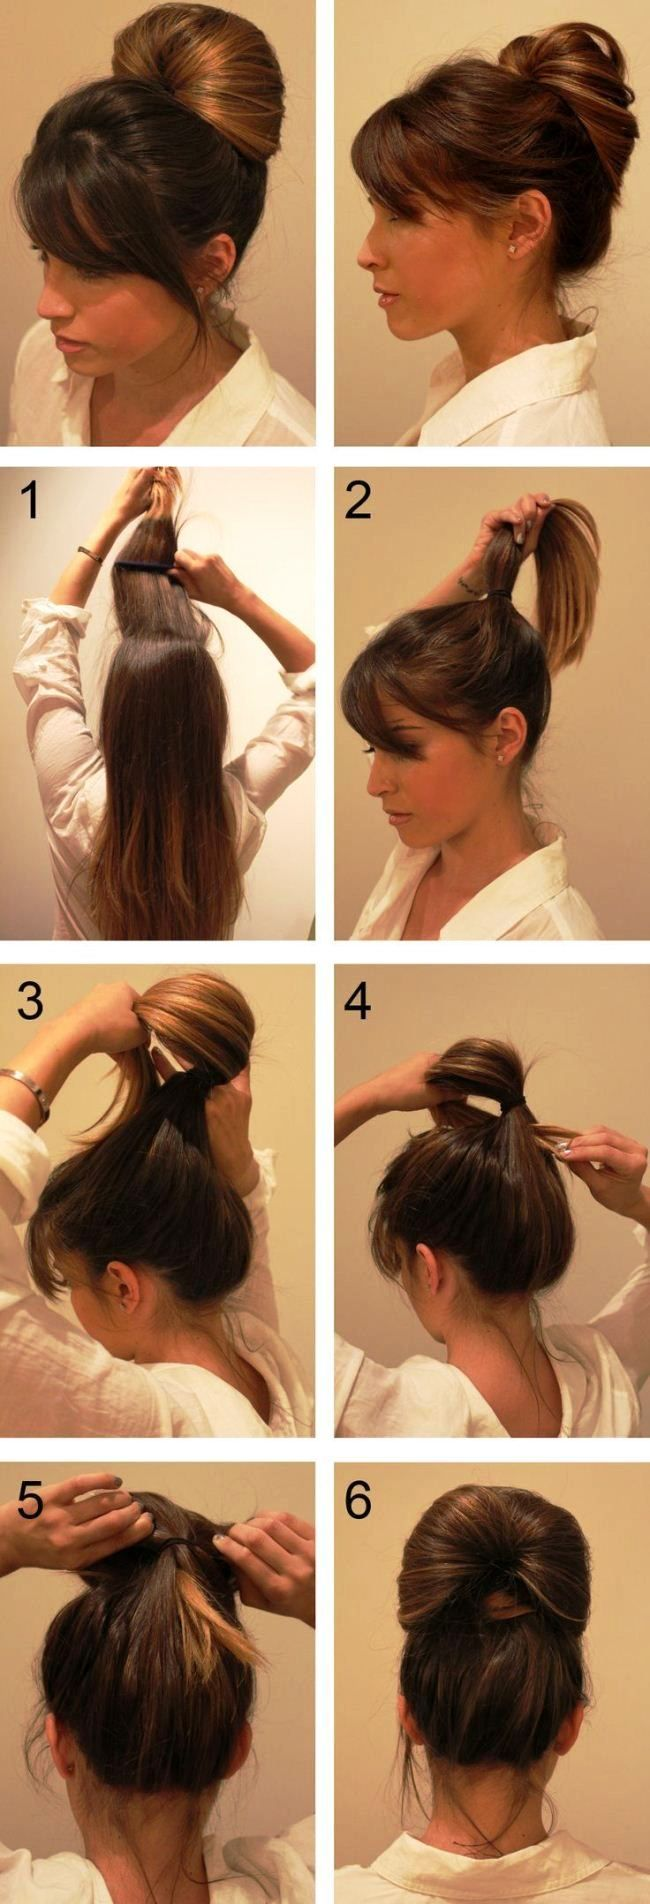 237 best party hairstyles for girl images on pinterest hairstyle inside out pony tail technique hair long hair updo braids diy hair diy bun hairstyles wedding hairstyles hair tutorials wedding hair easy hairstyles solutioingenieria Images